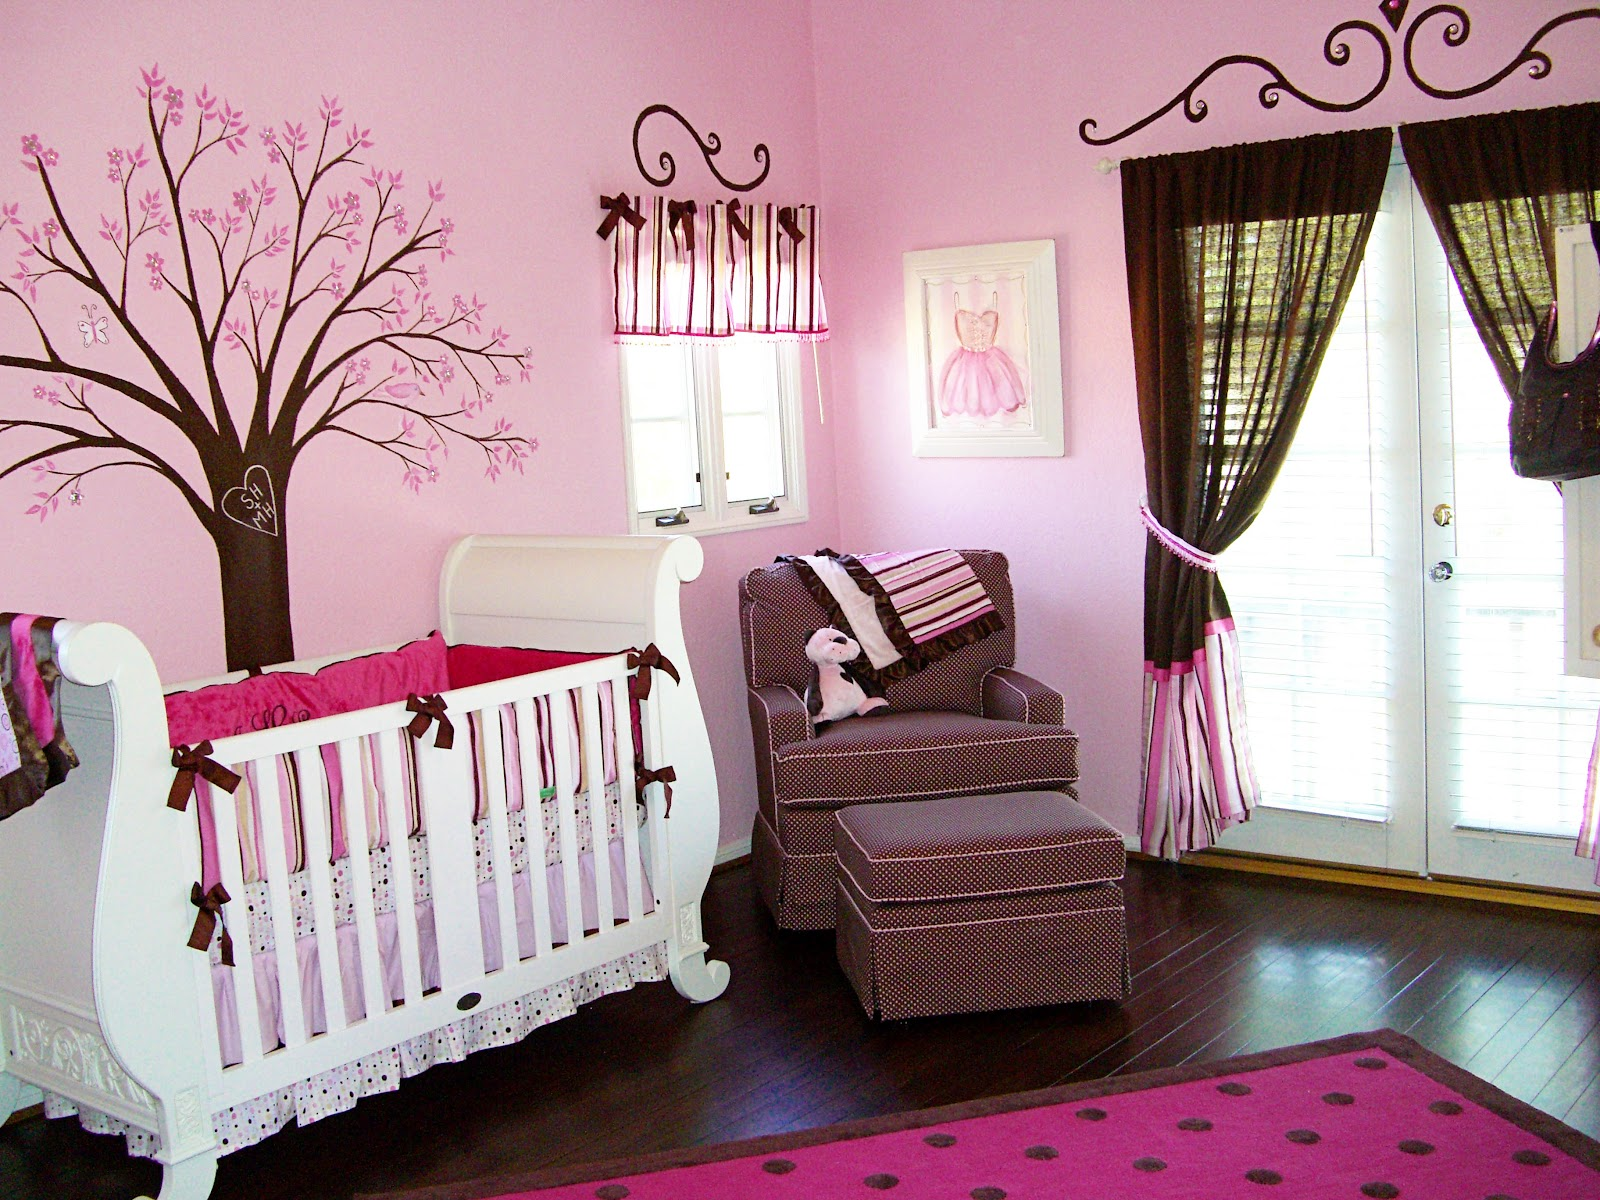 Full pink color girl baby room ideas decorate for Baby girl room decoration ideas